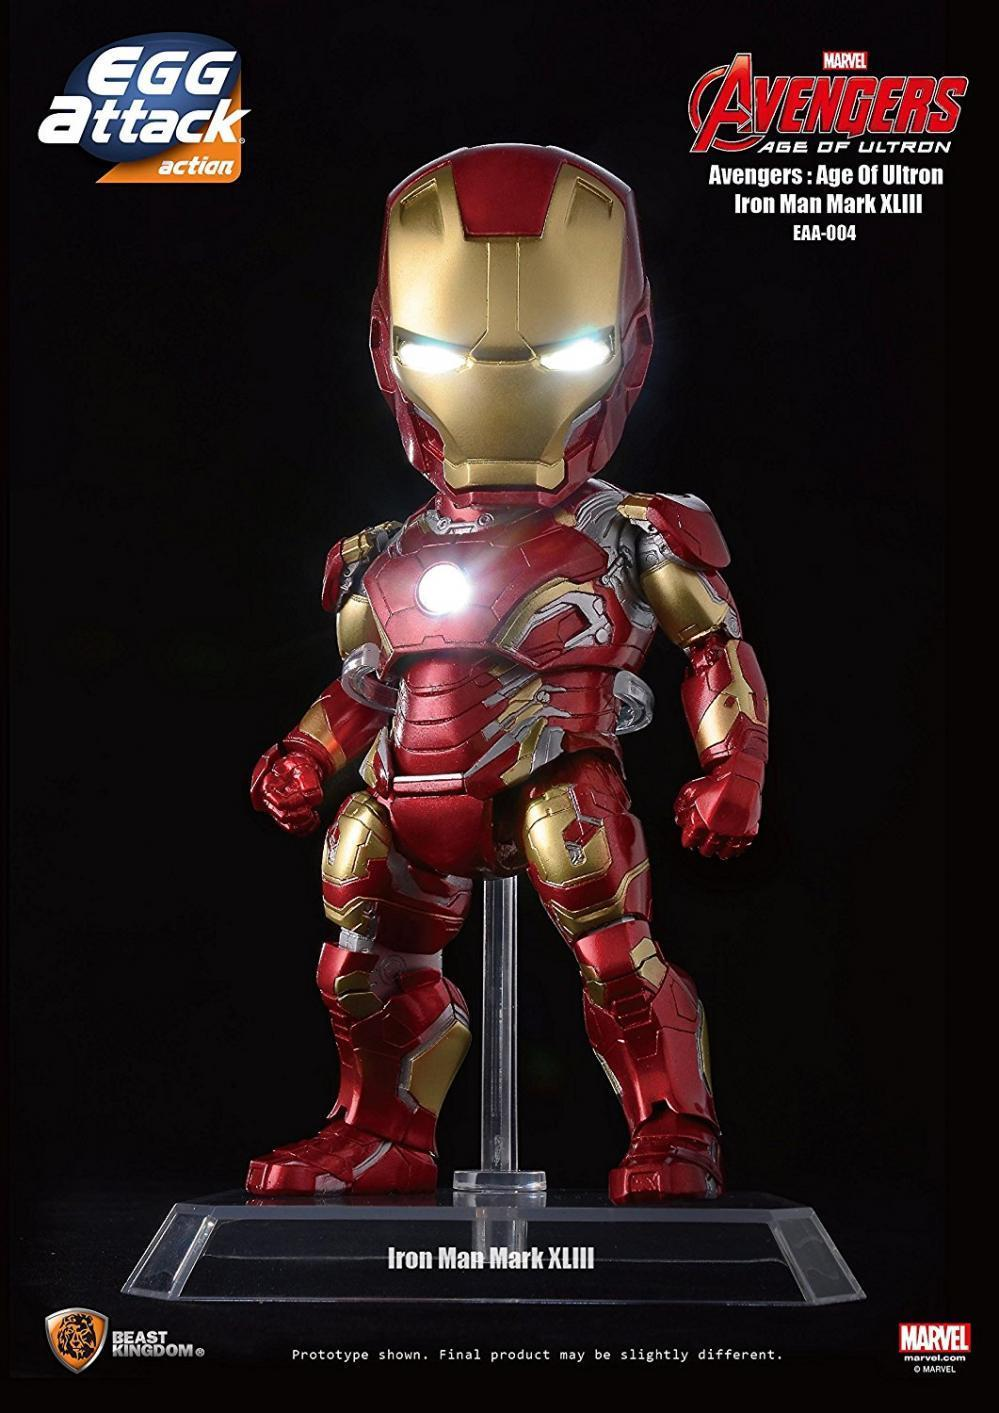 Beast Kingdom Egg Attack Action Iron Man Mark 43 Avengers Age of Ultron Figure BKT28979